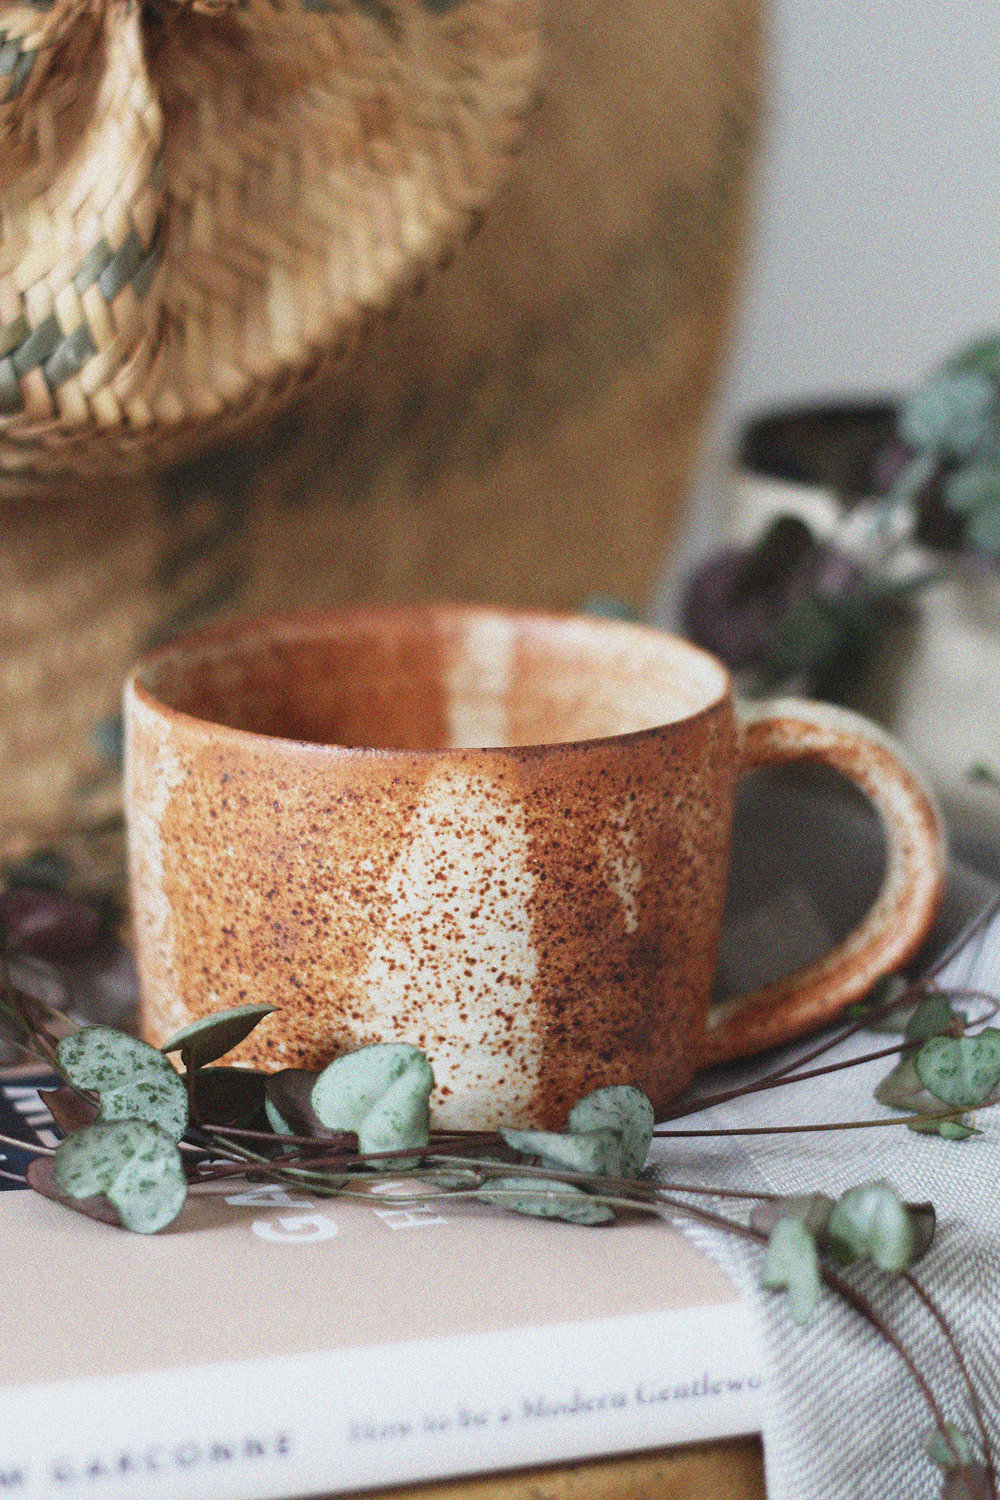 Paige Mitchell Ceramics, available in-store and online.